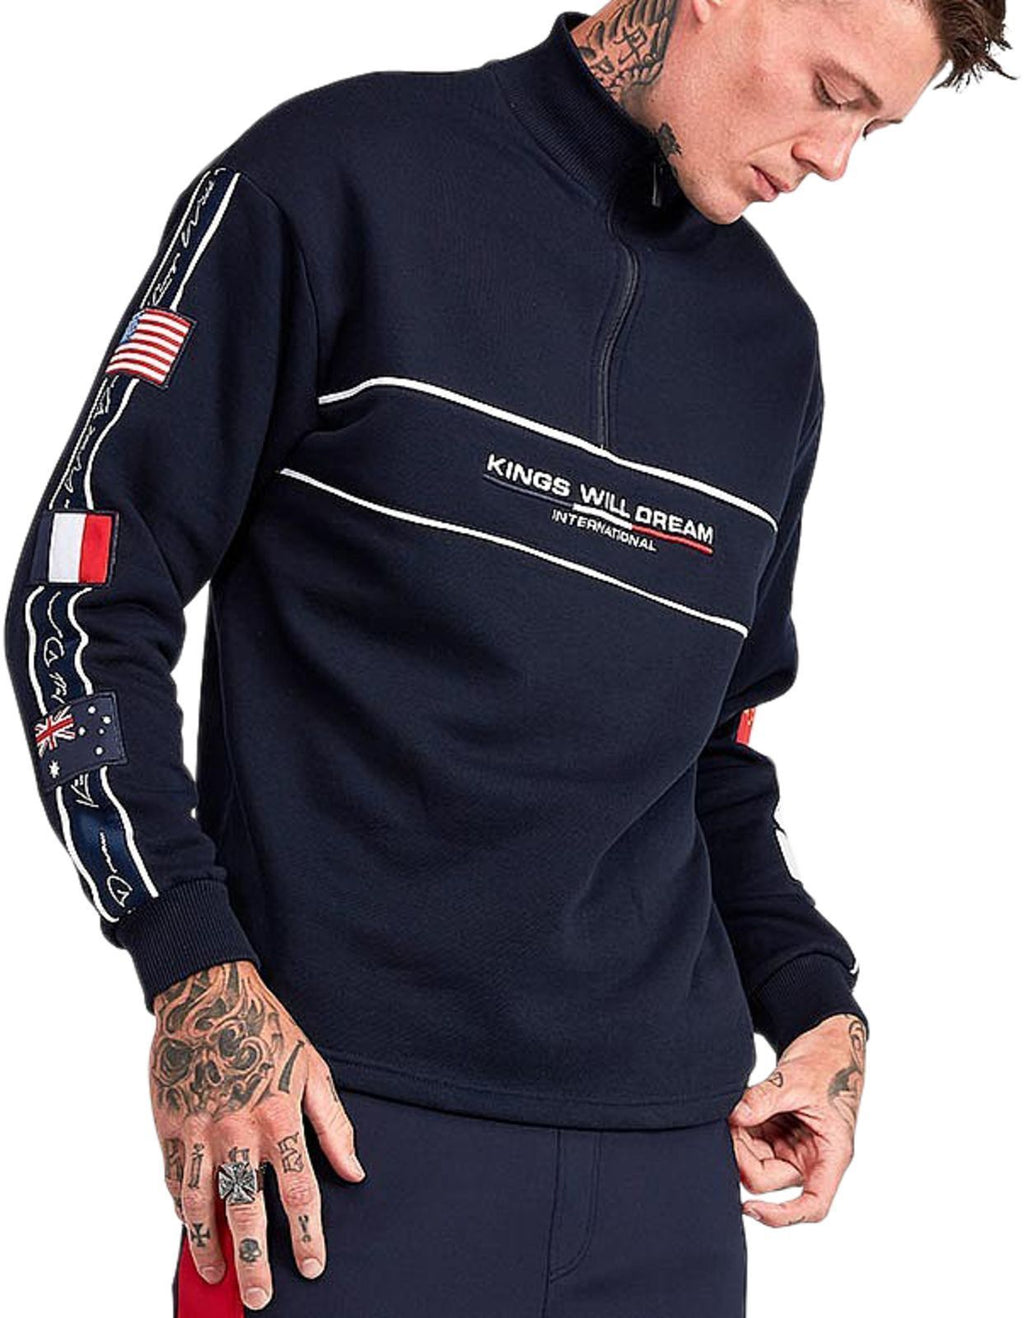 Kings Will Dream Largorce 1/4 Zip Track Top